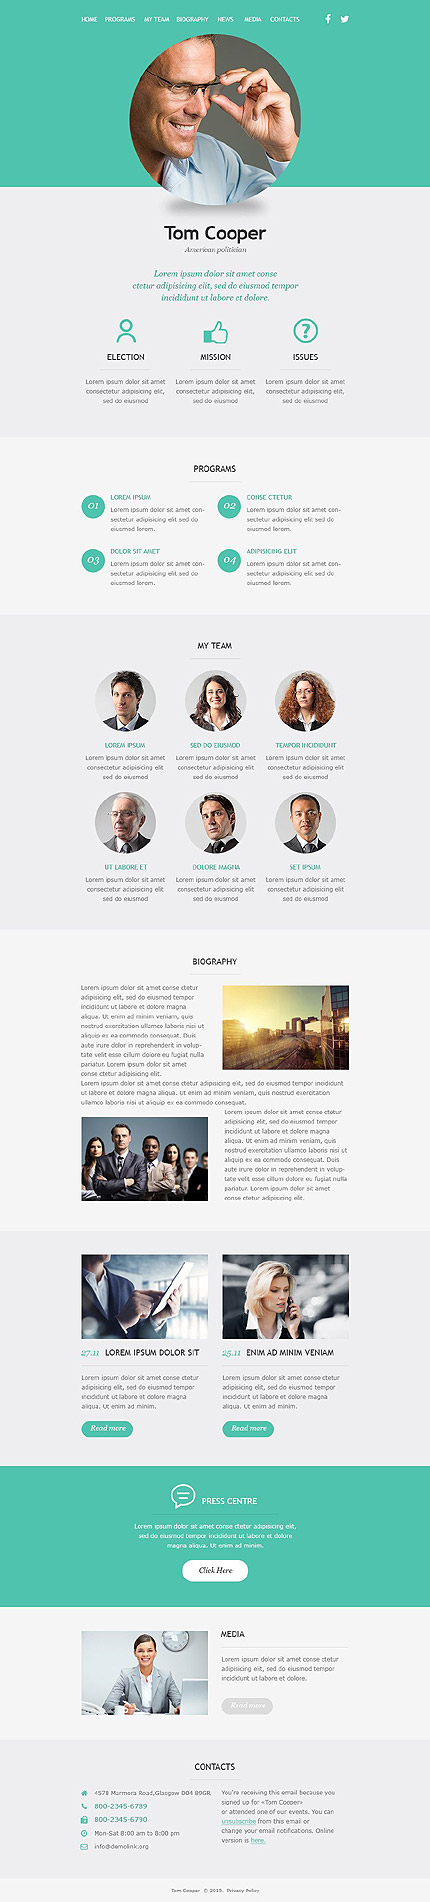 Template 53101 - Political Candidate Responsive Newsletter Template